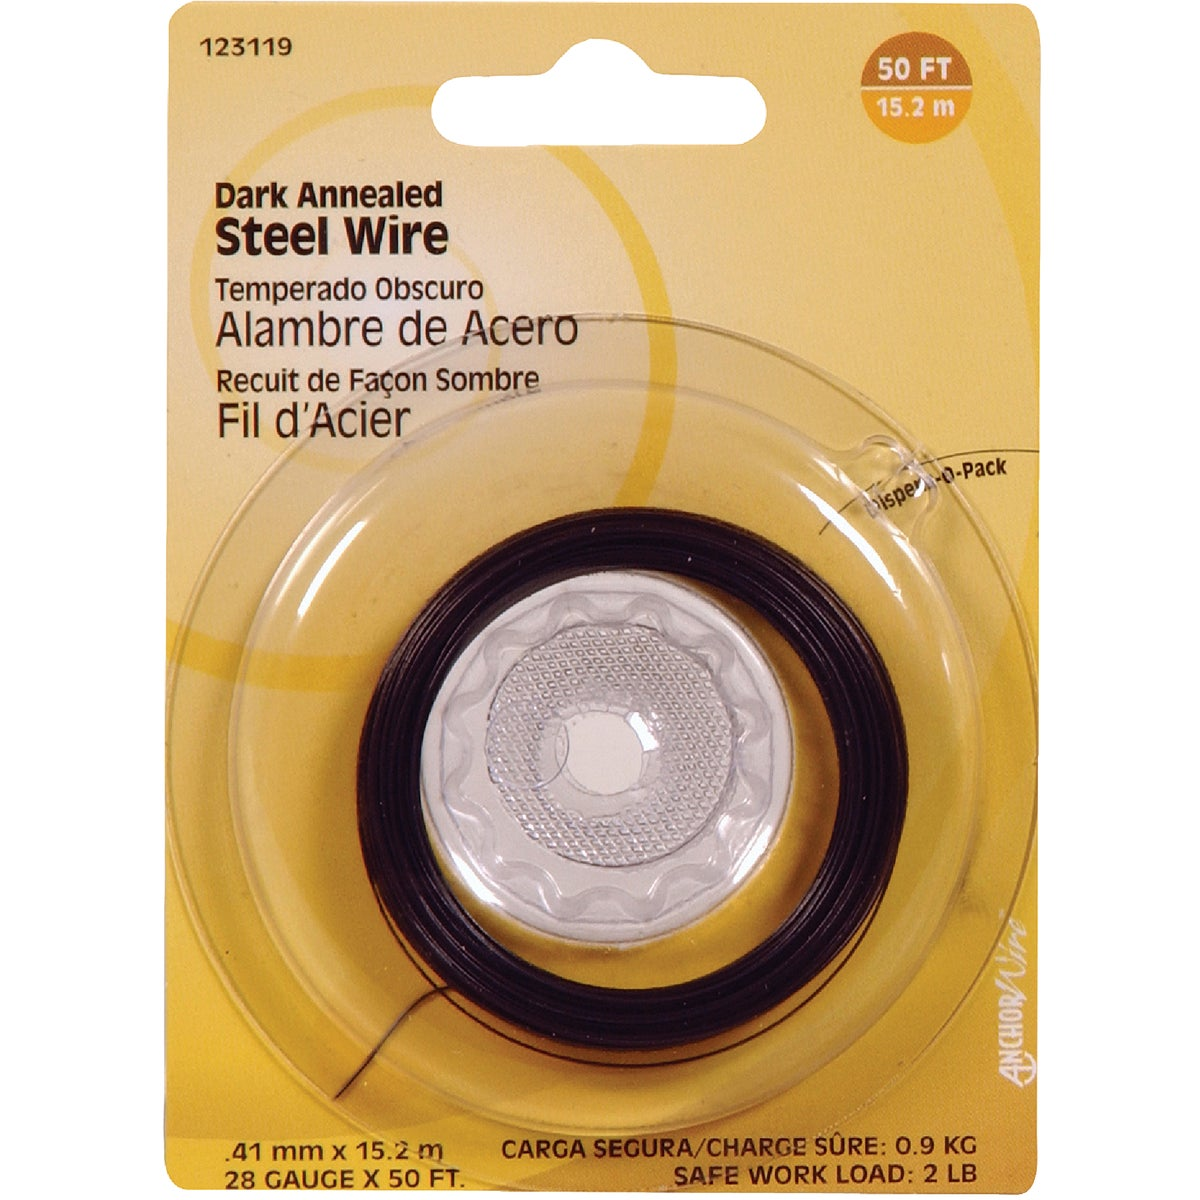 50' 28G BLACK WIRE - 123119 by Hillman Fastener